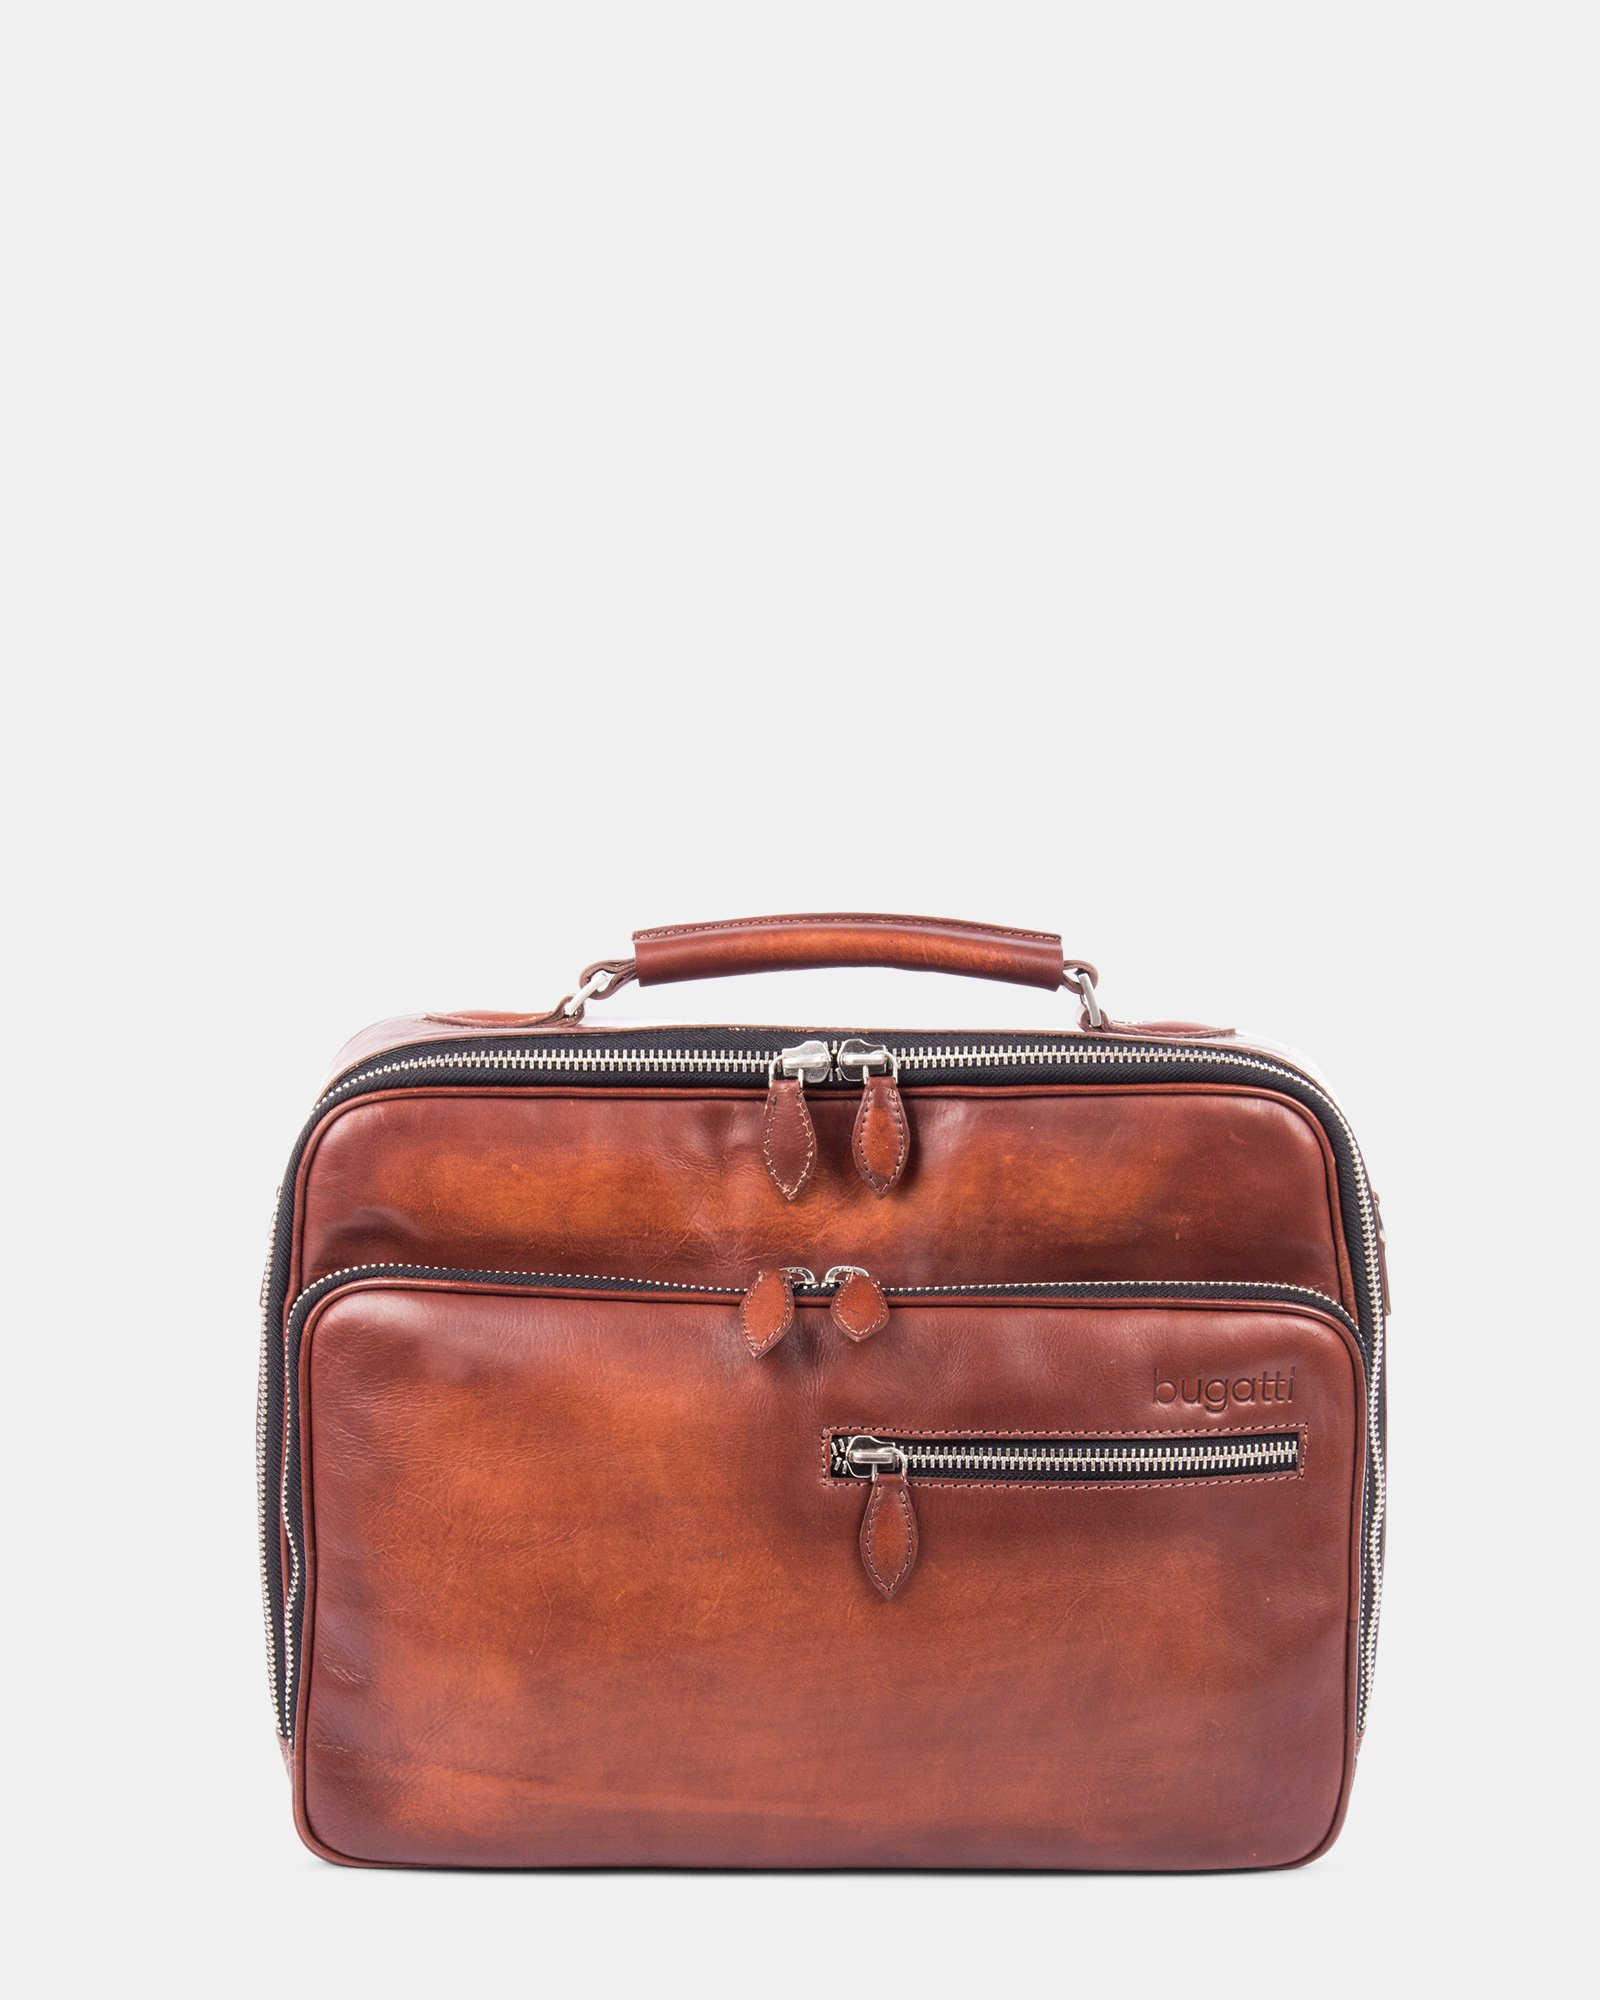 DOMUS - Briefcase with front zippered pocket for 14 in Laptop - Cognac - Bugatti - Zoom